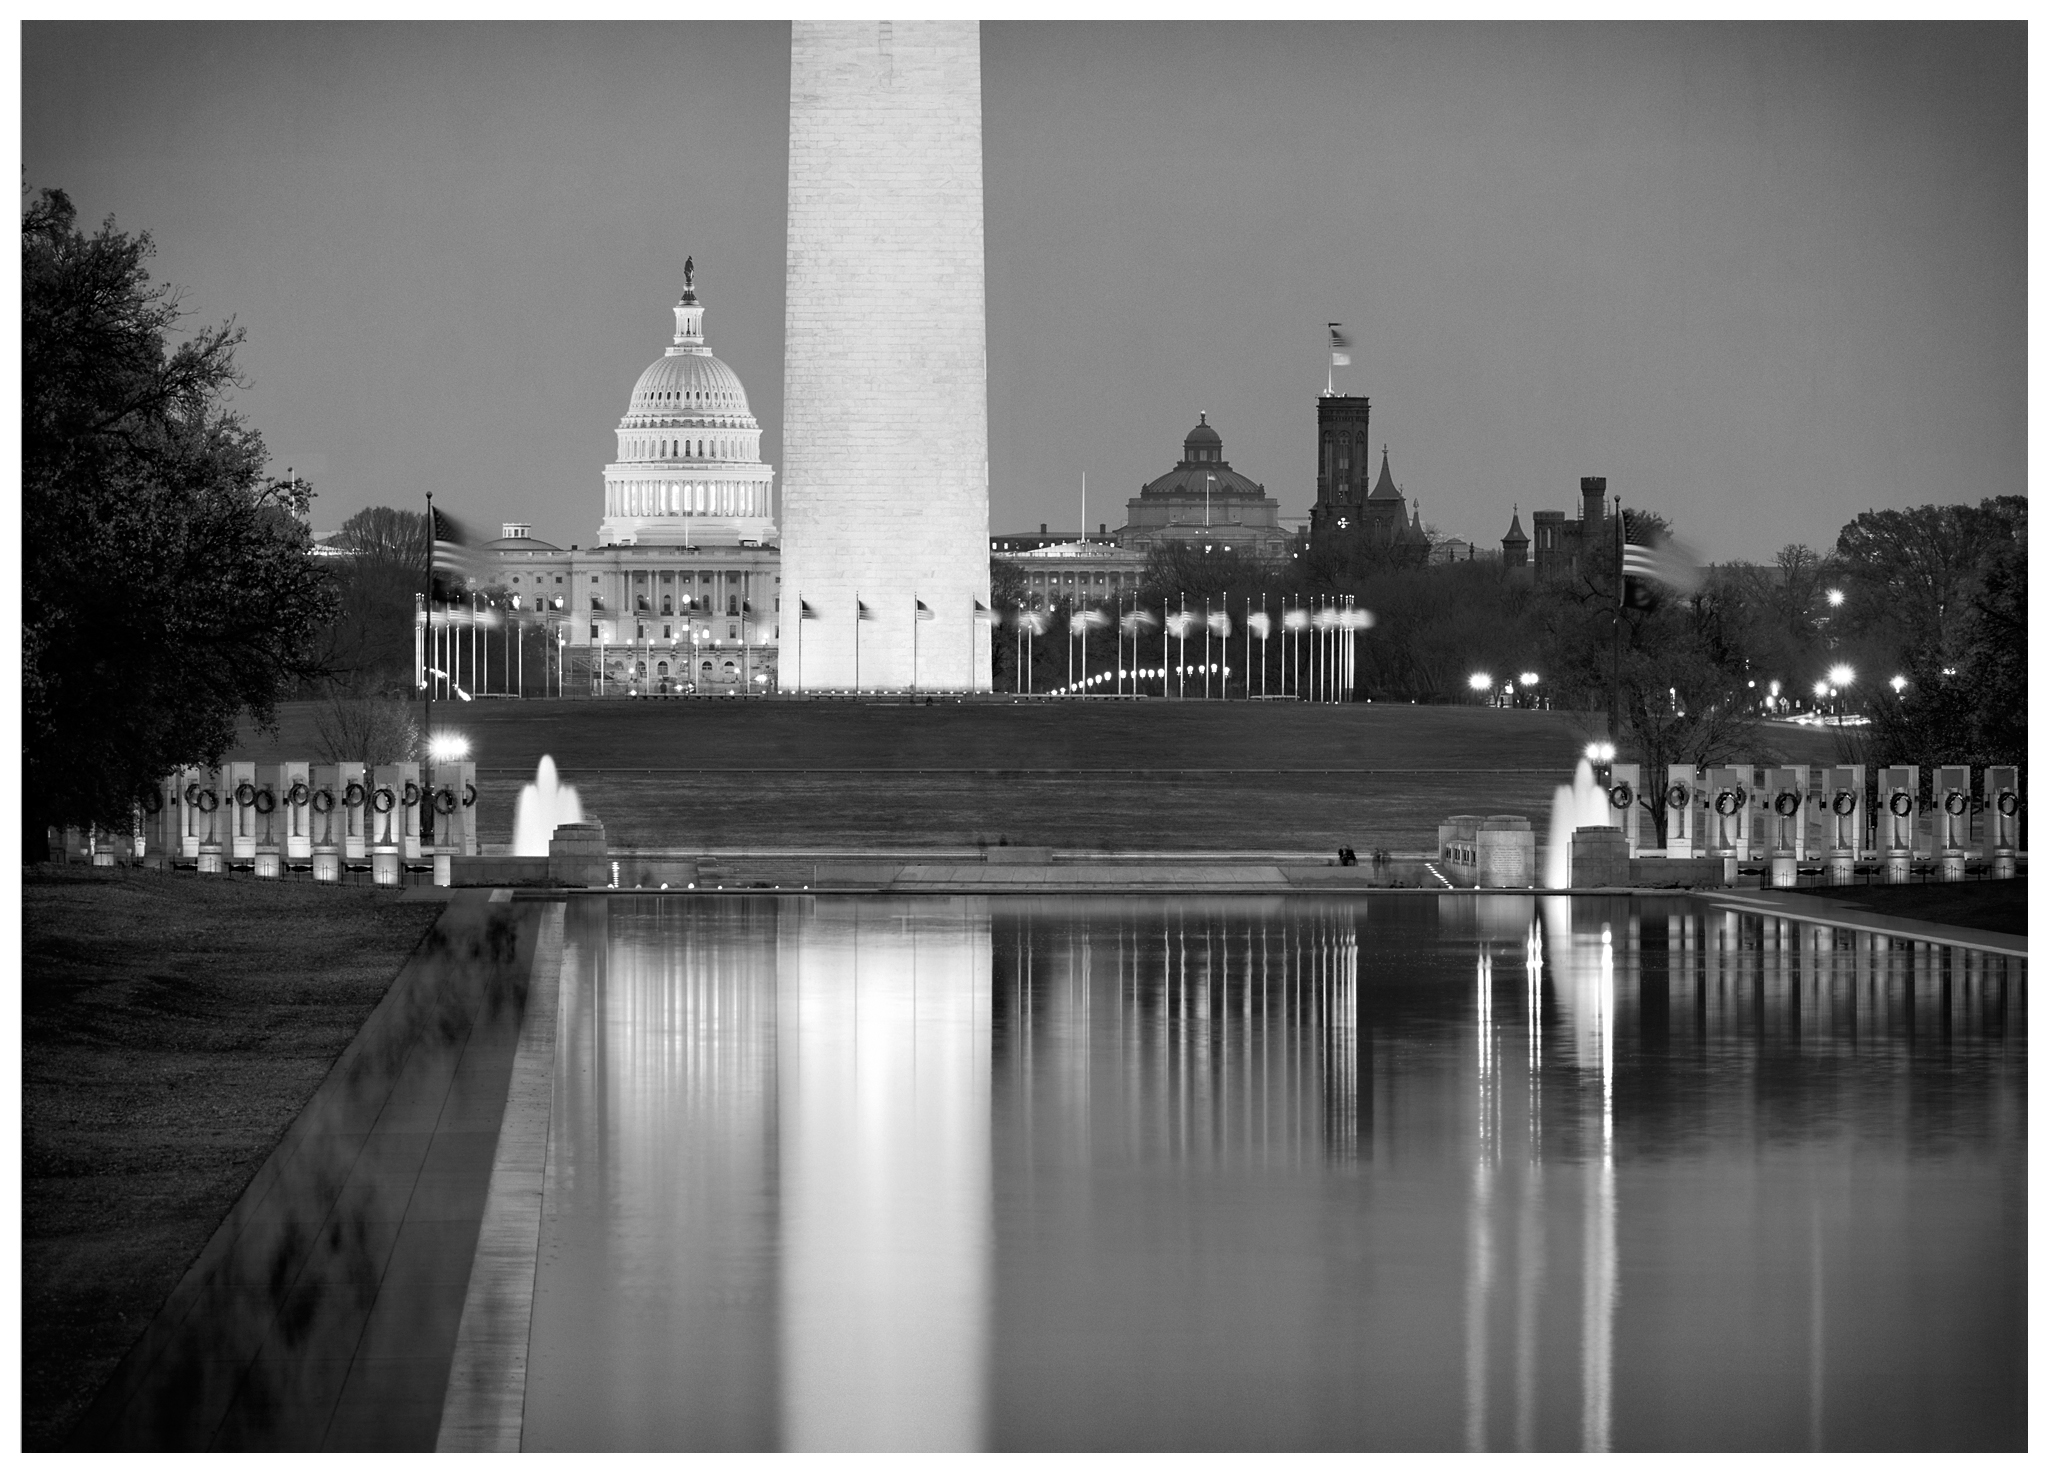 Foundry Gallery-Gregory OHanlon-Reflections on the National Mall-12x16-Photograph-Open Edition--2014-$850.jpg